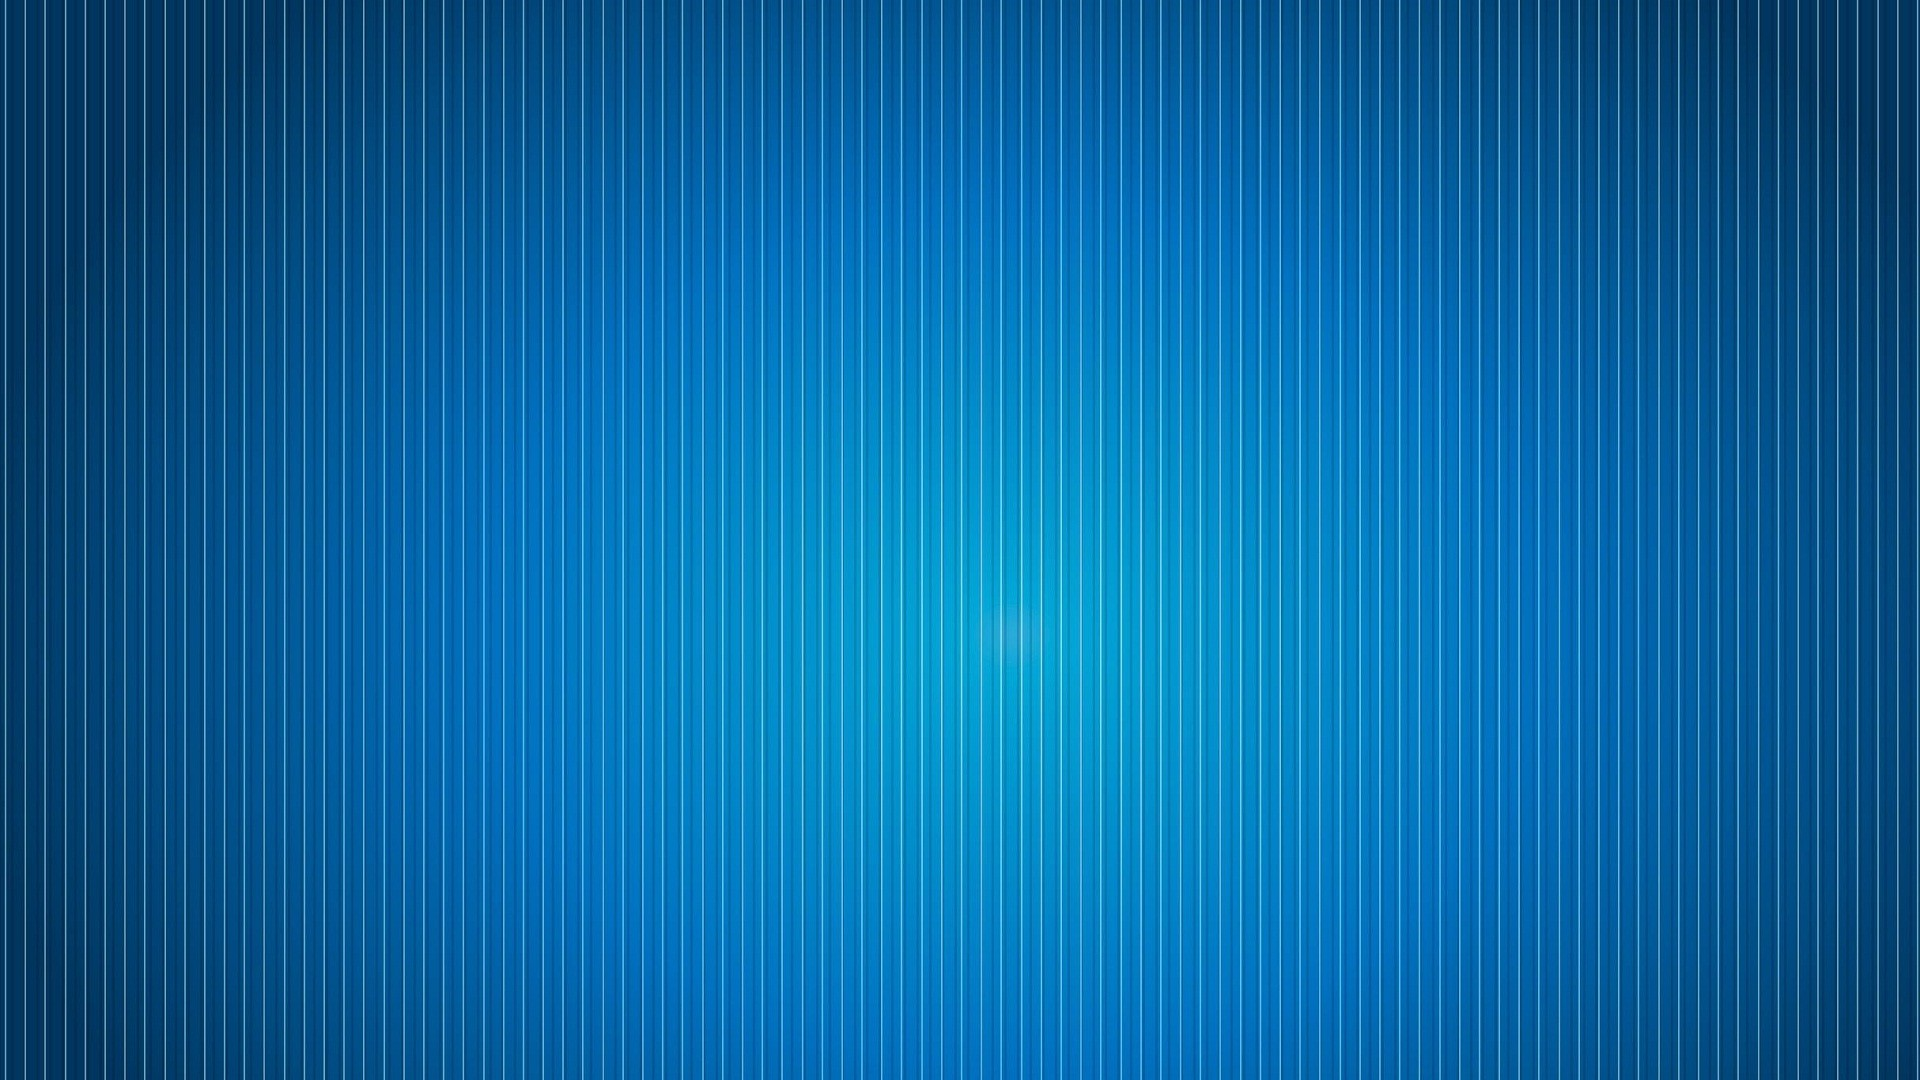 1920x1080 Blue plain background wide computer wallpapers